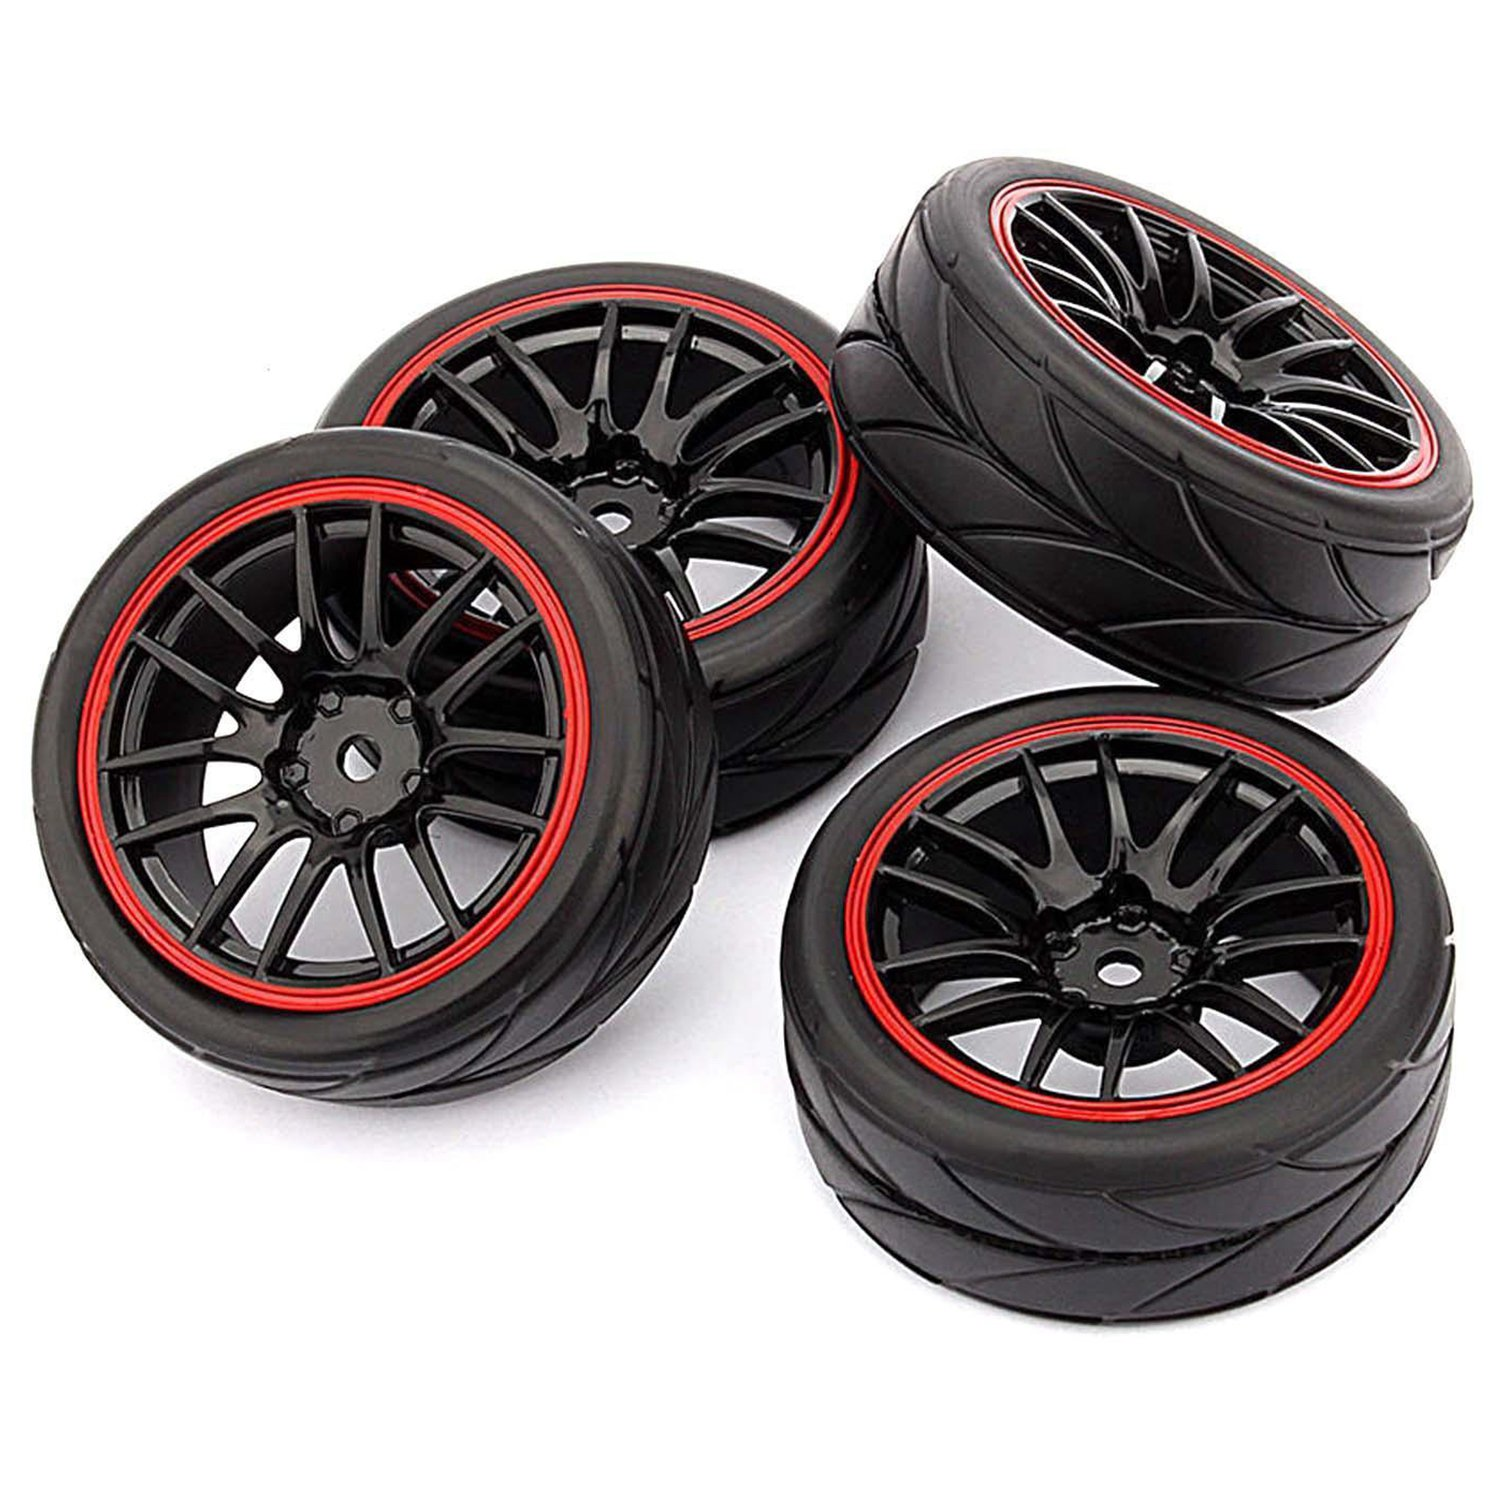 4pcs 12mm Hub Wheel Rims /& Rubber Tires for RC 1//10 on-road Touring Racing Car B